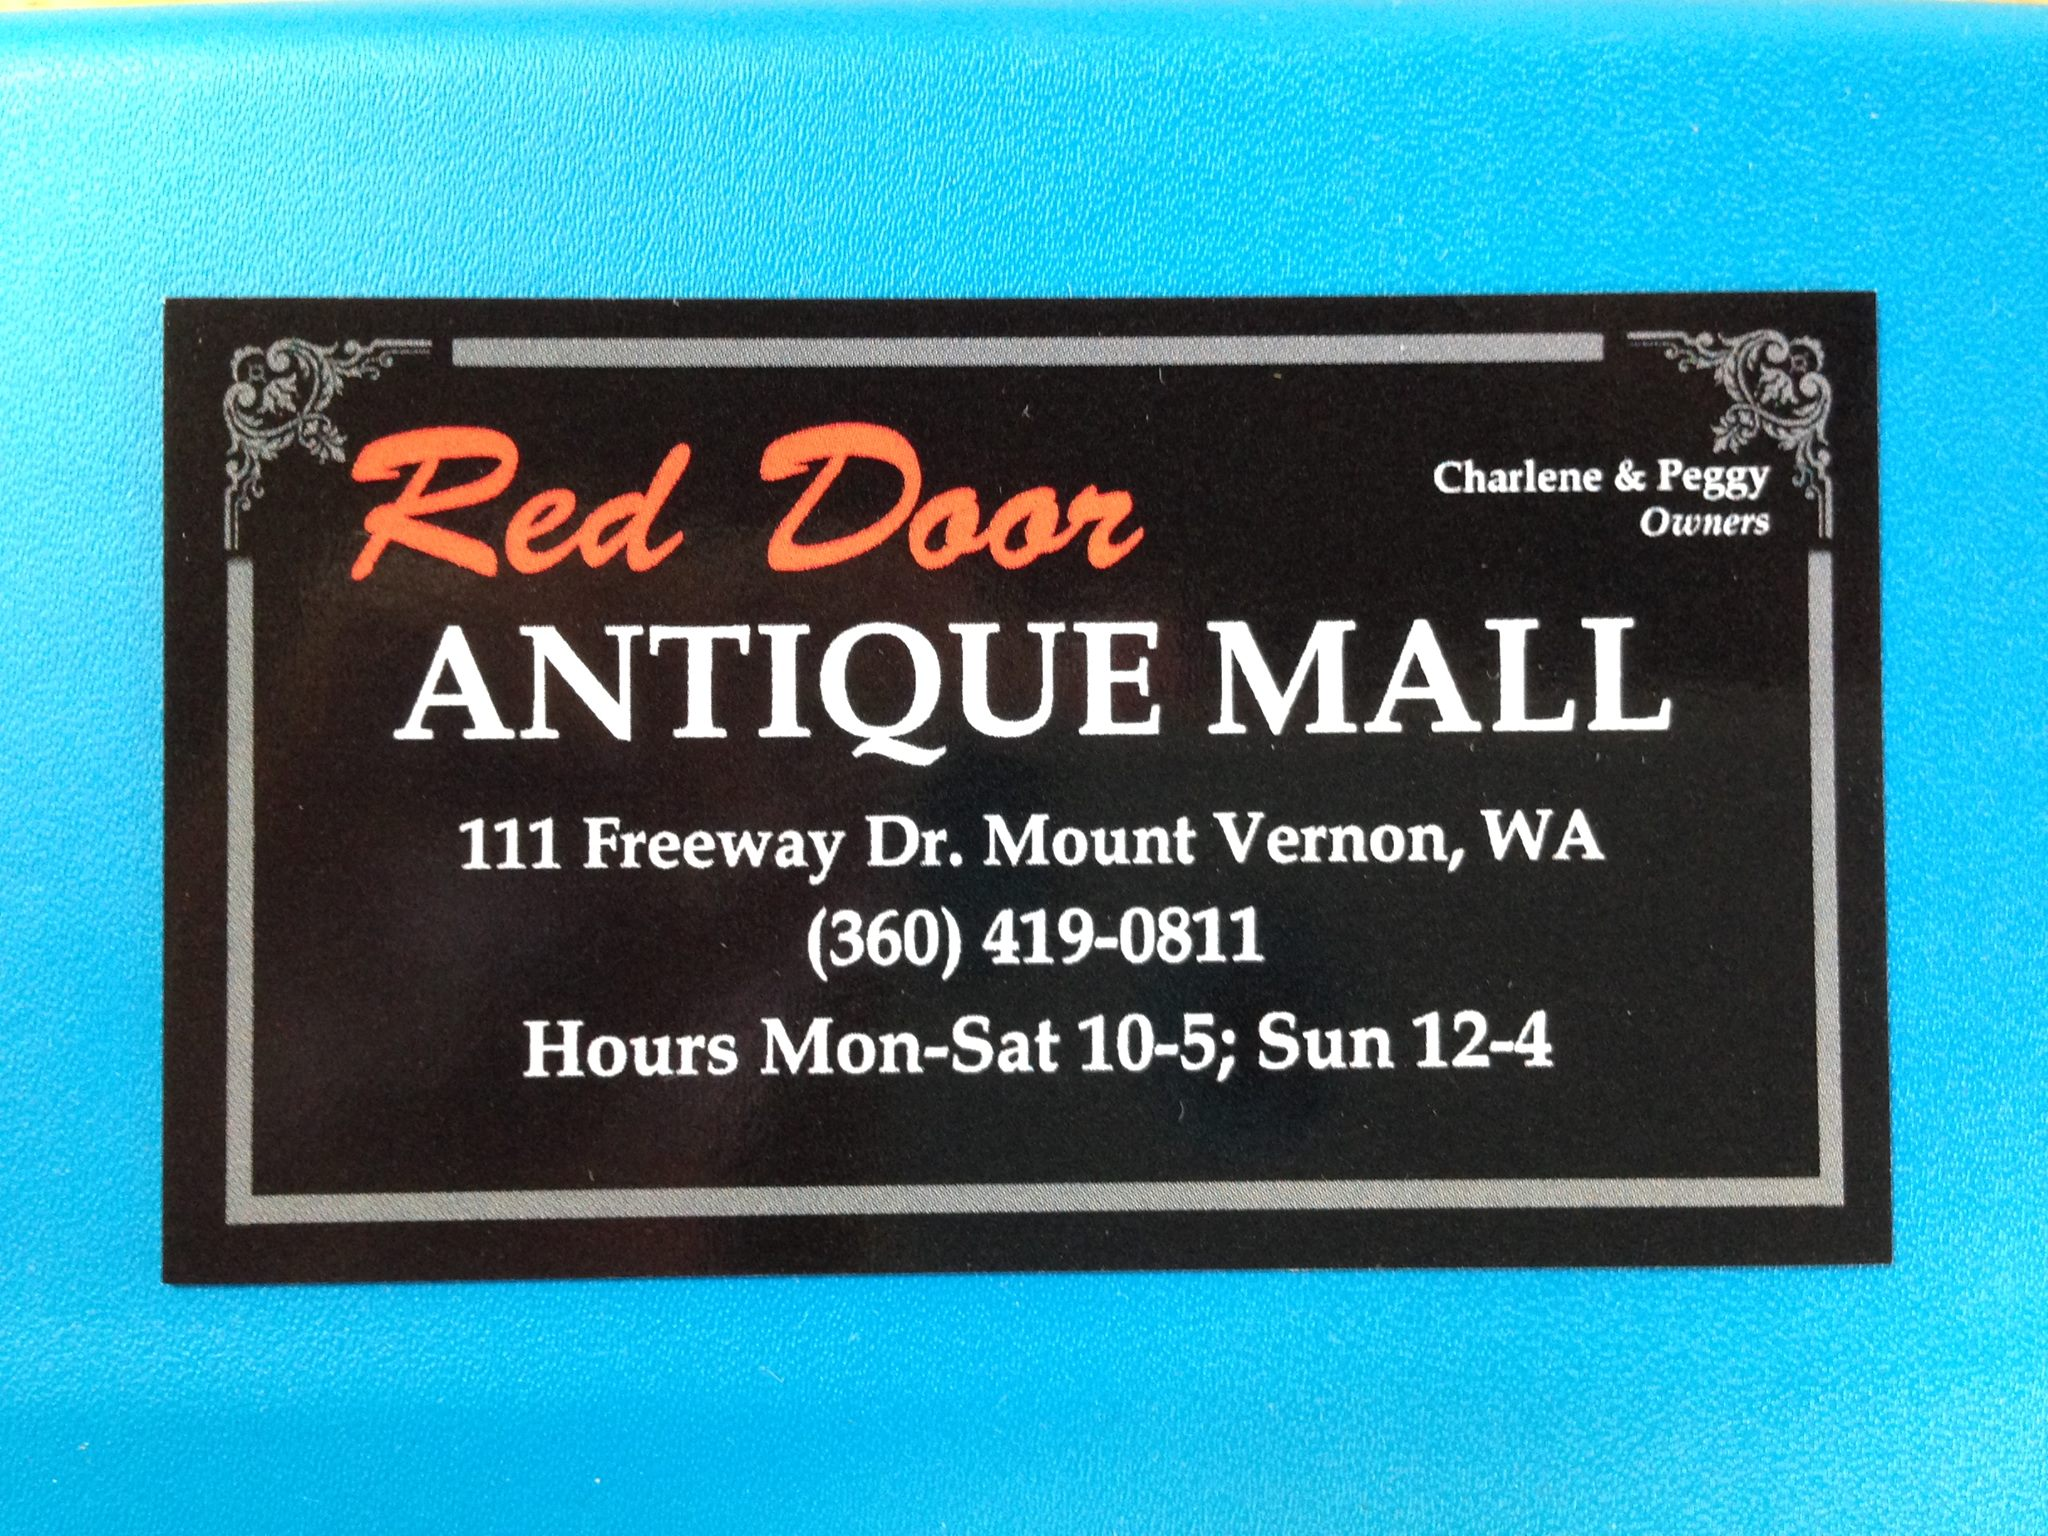 Red Door Antique Mall The logo